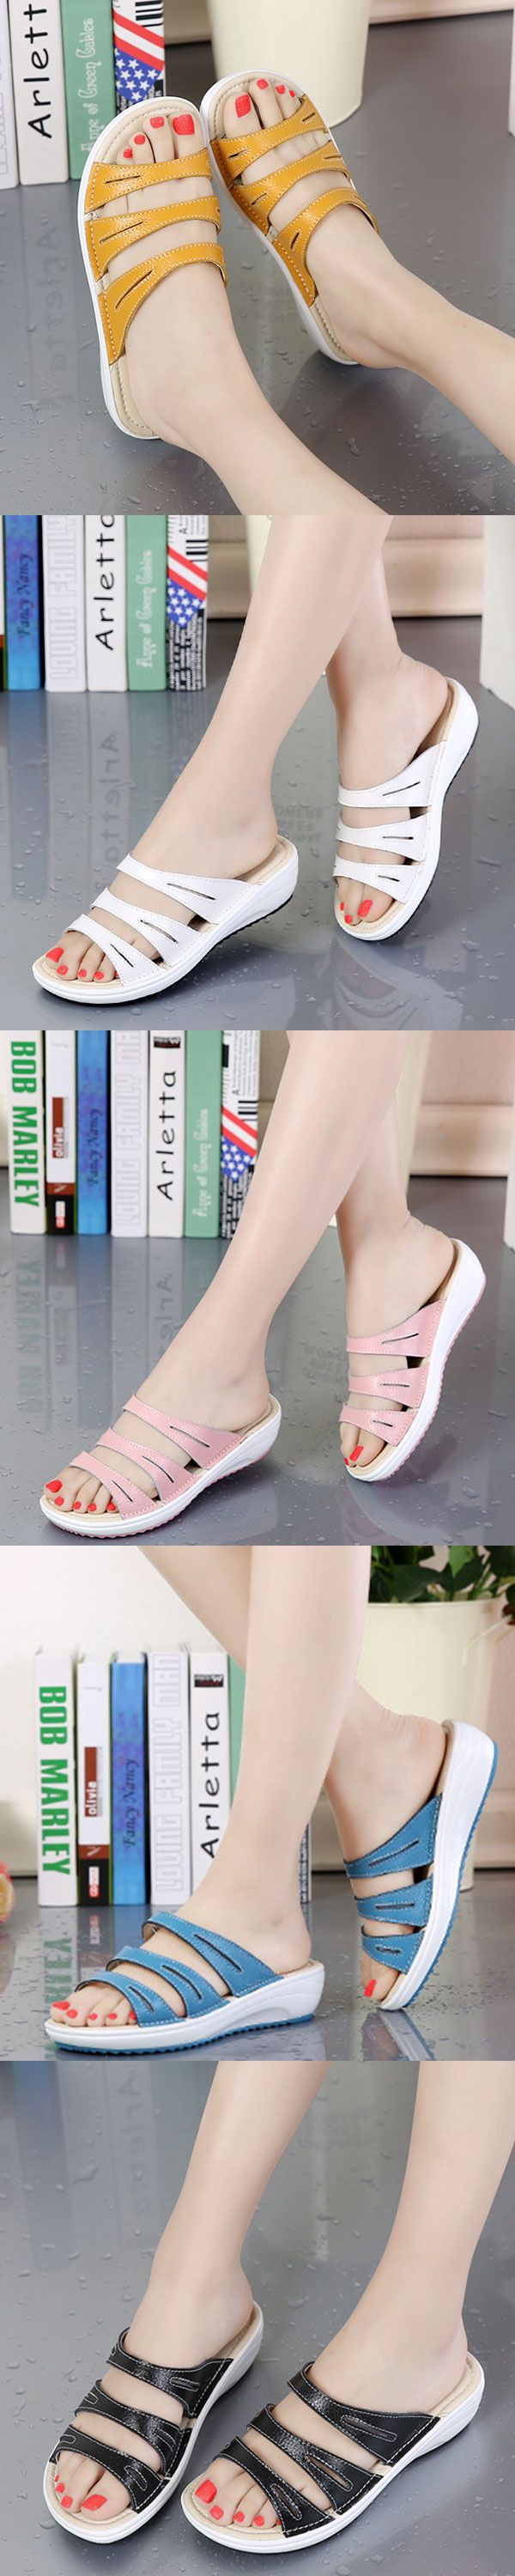 US$20.99  Candy Color Leather Slip On Beach Flat Platform Sandals For Women